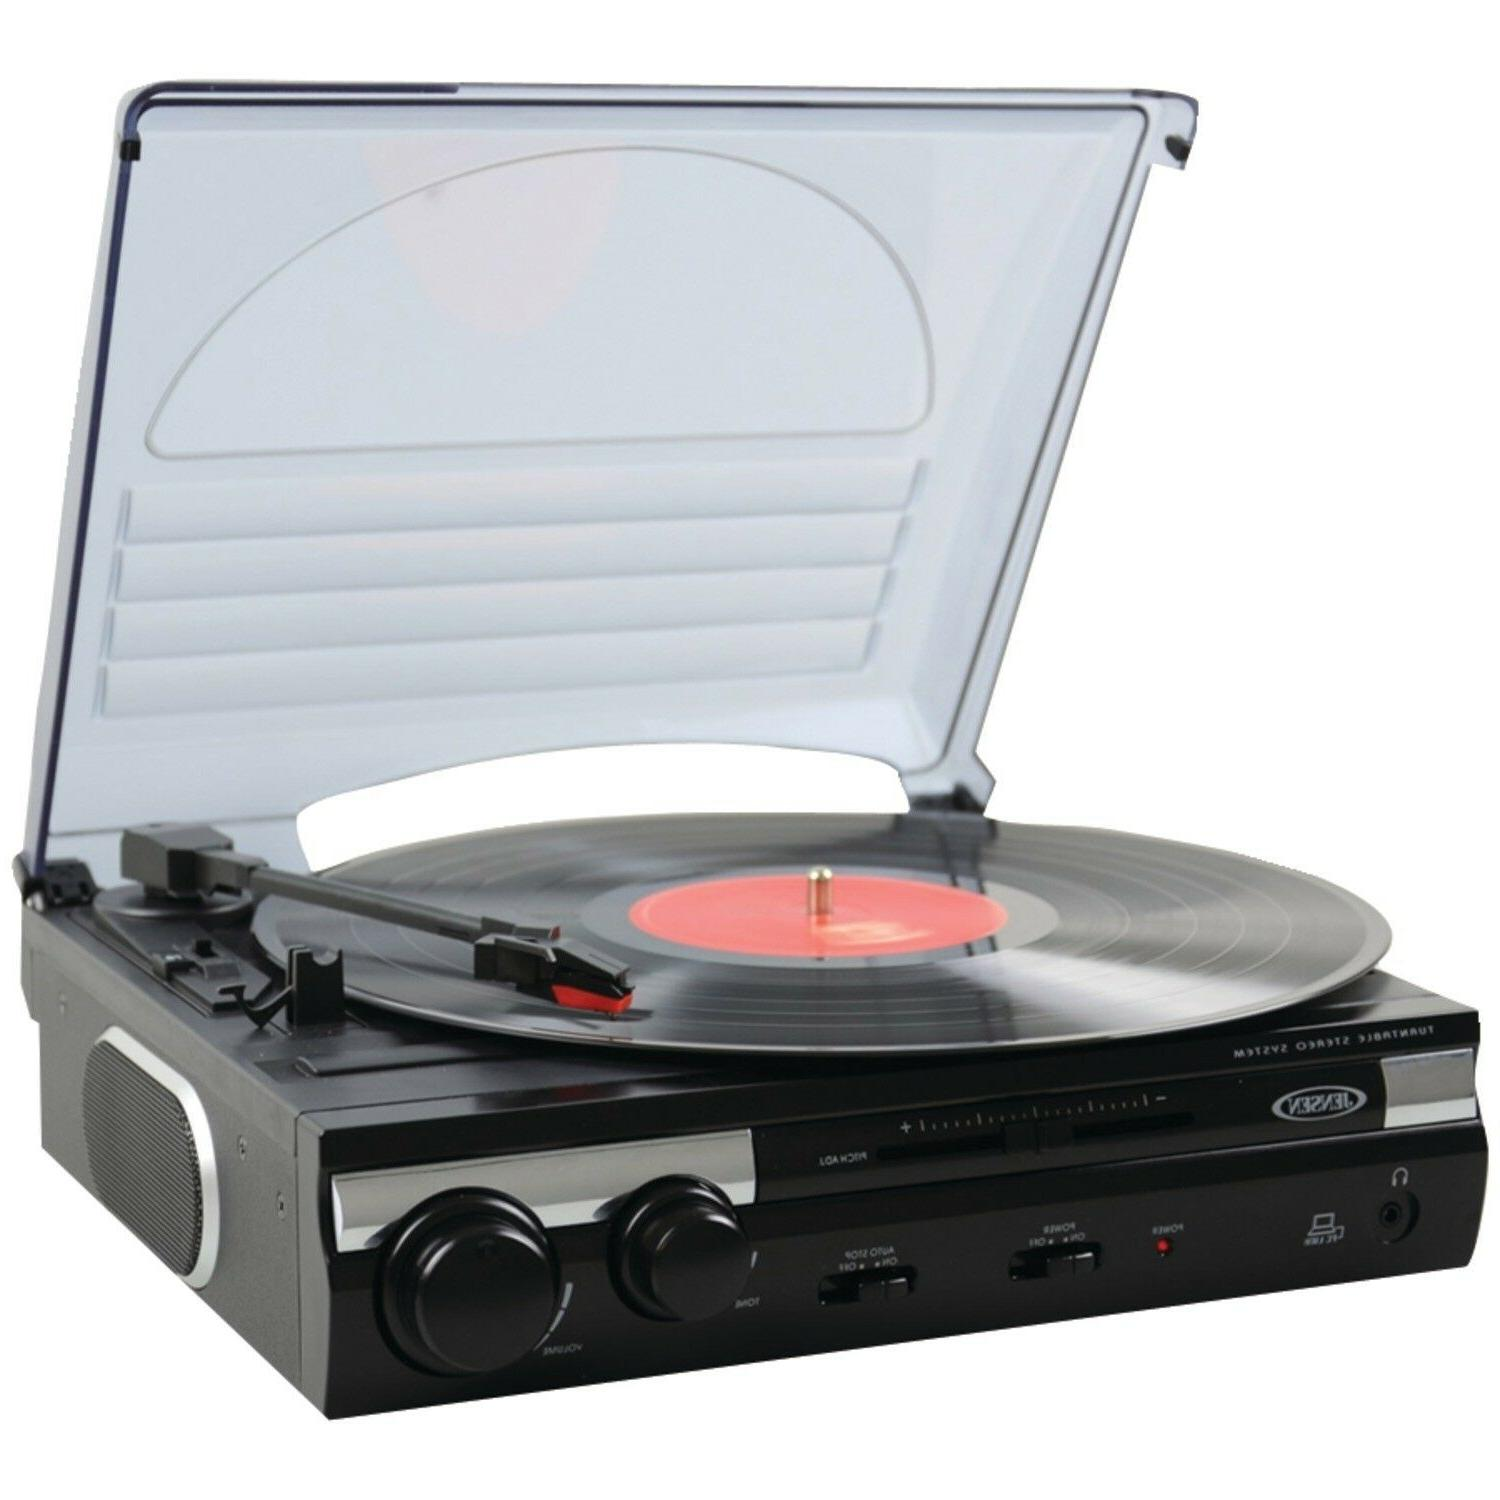 Jensen Stereo Record with Built-in Speakers